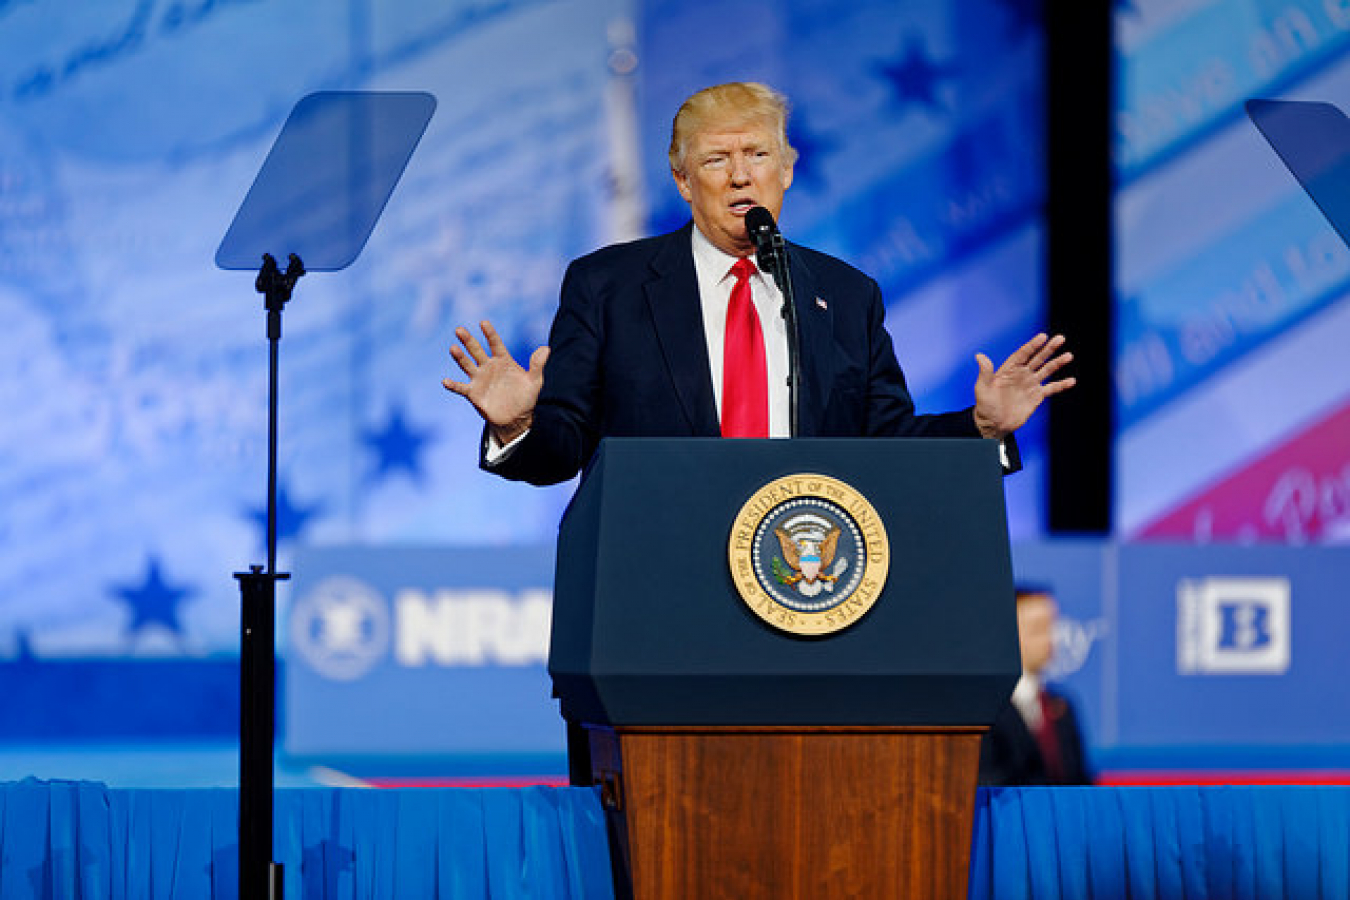 President of the United States Donald J. Trump at CPAC 2017 February 24th 2017 by Michael Vadon